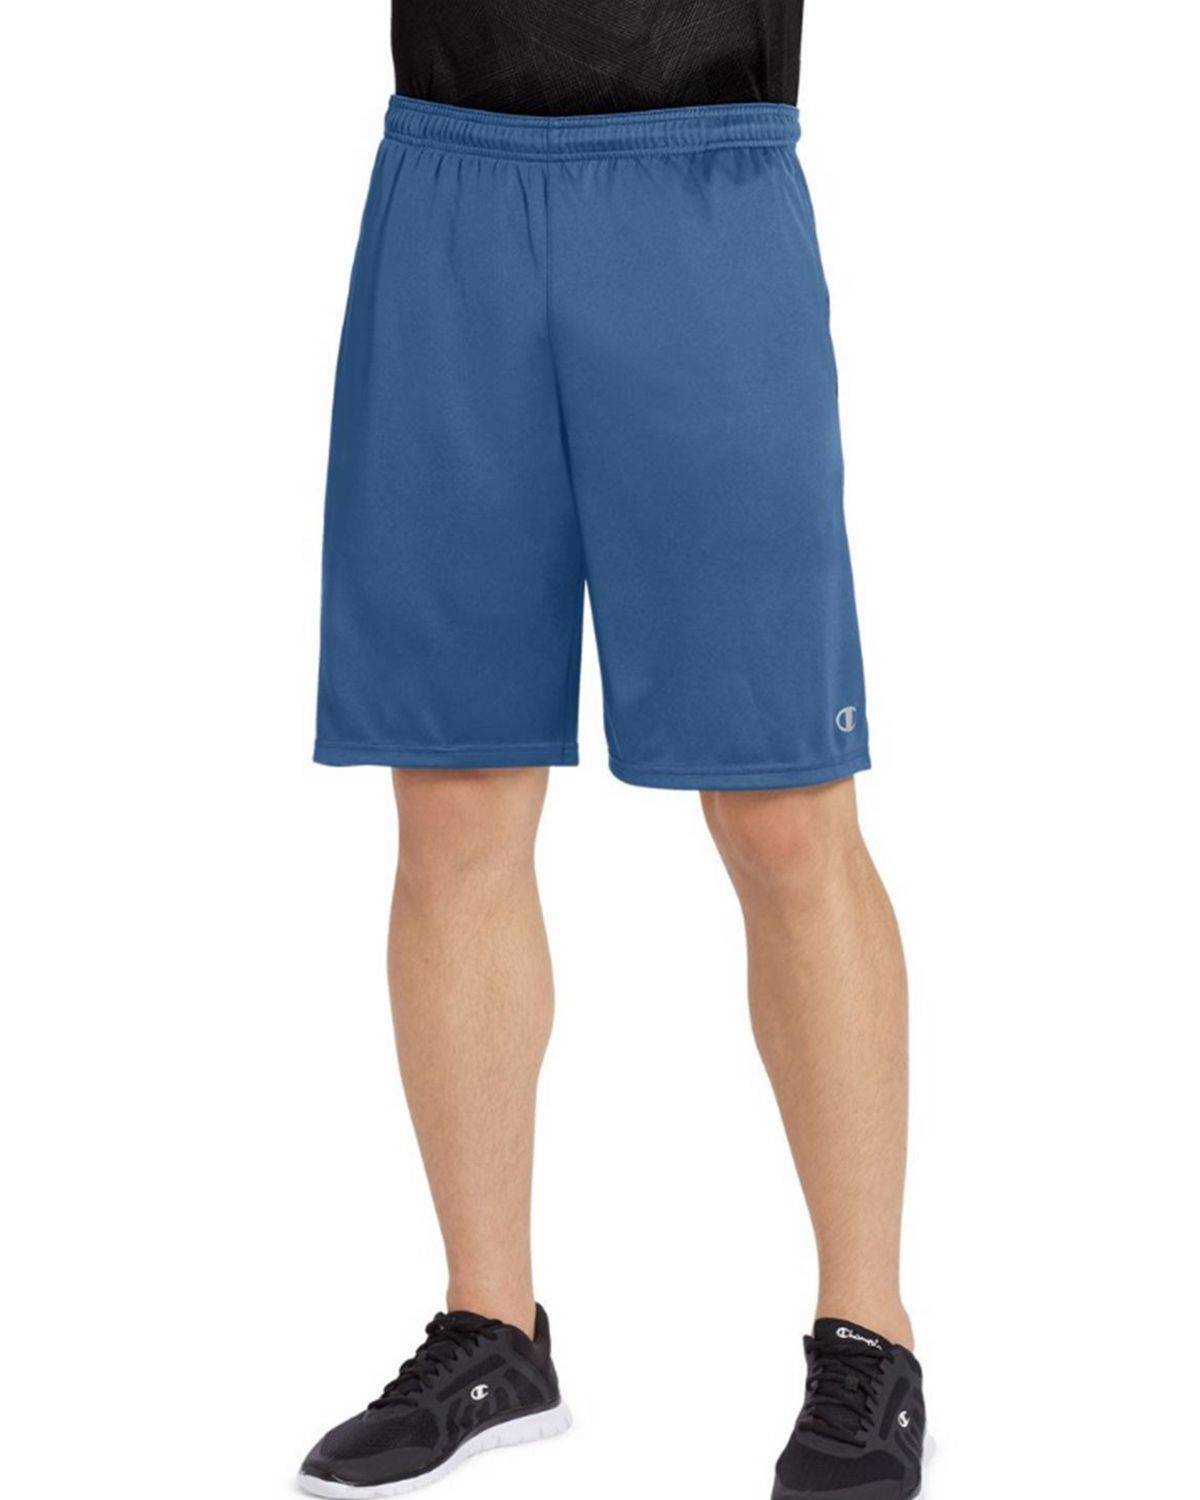 Champion 88125 Vapor Mens Shorts - Seabottom Blue/Navy - S 88125